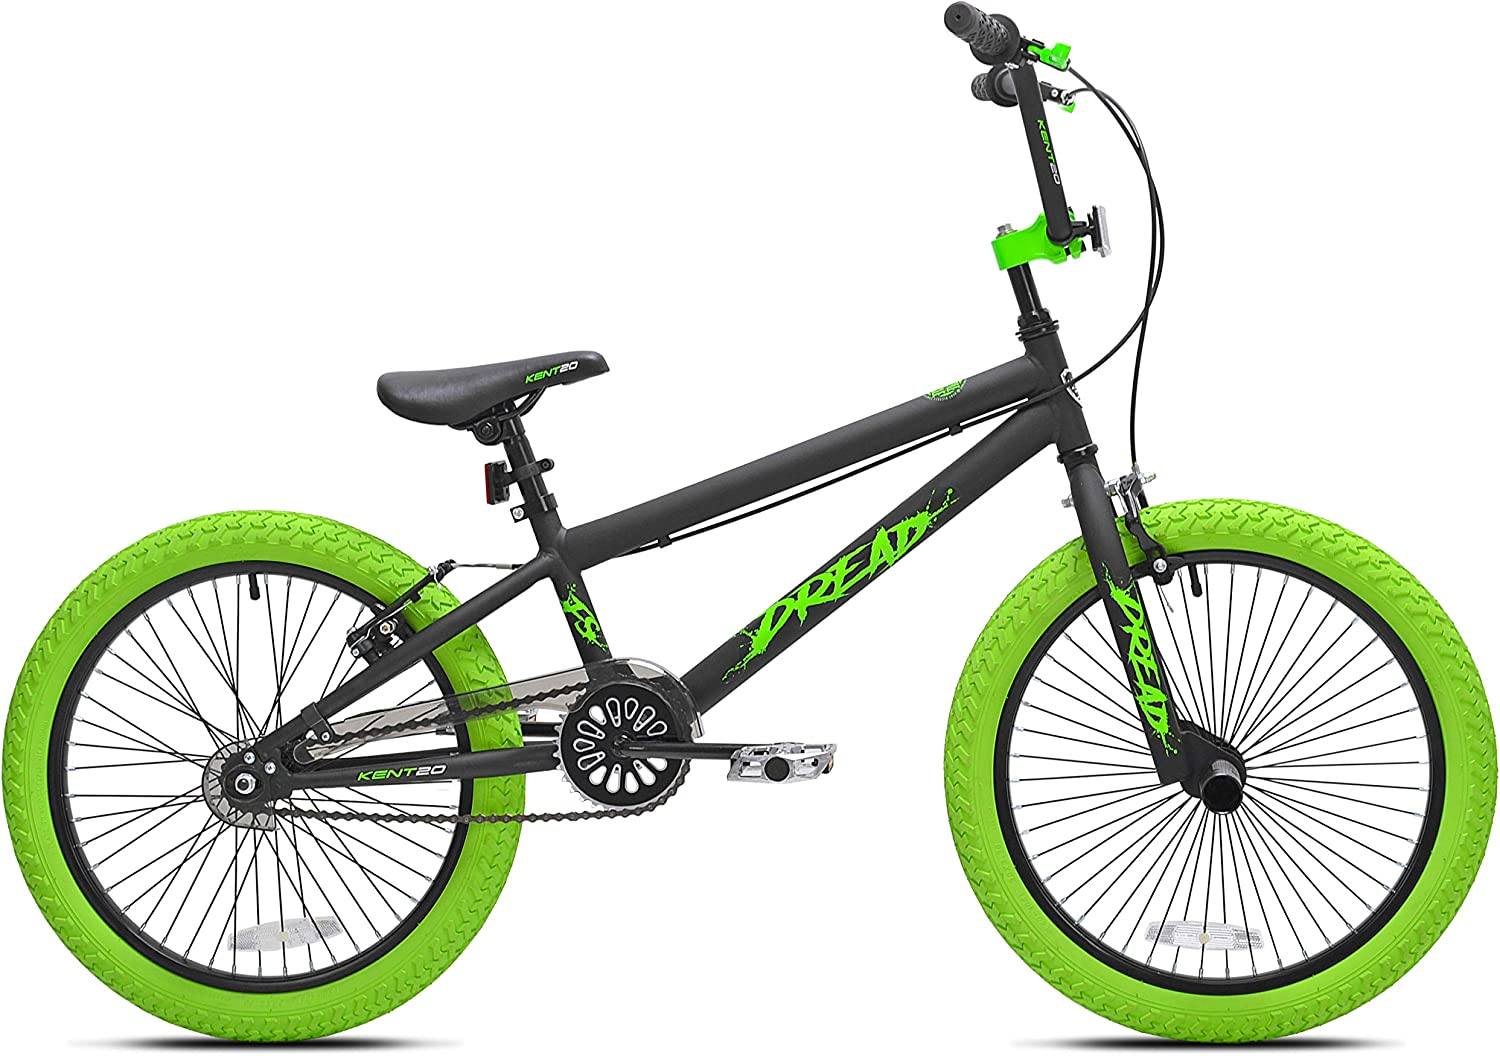 Offer an Amazingly Smooth,Stylish Ride for Kids with Sense of Adventure with Kent 20 Boys ,Dread BMX Bicycle,Green,for Ages 8-12,Exciting Gift Idea for Their Amazing Tricks